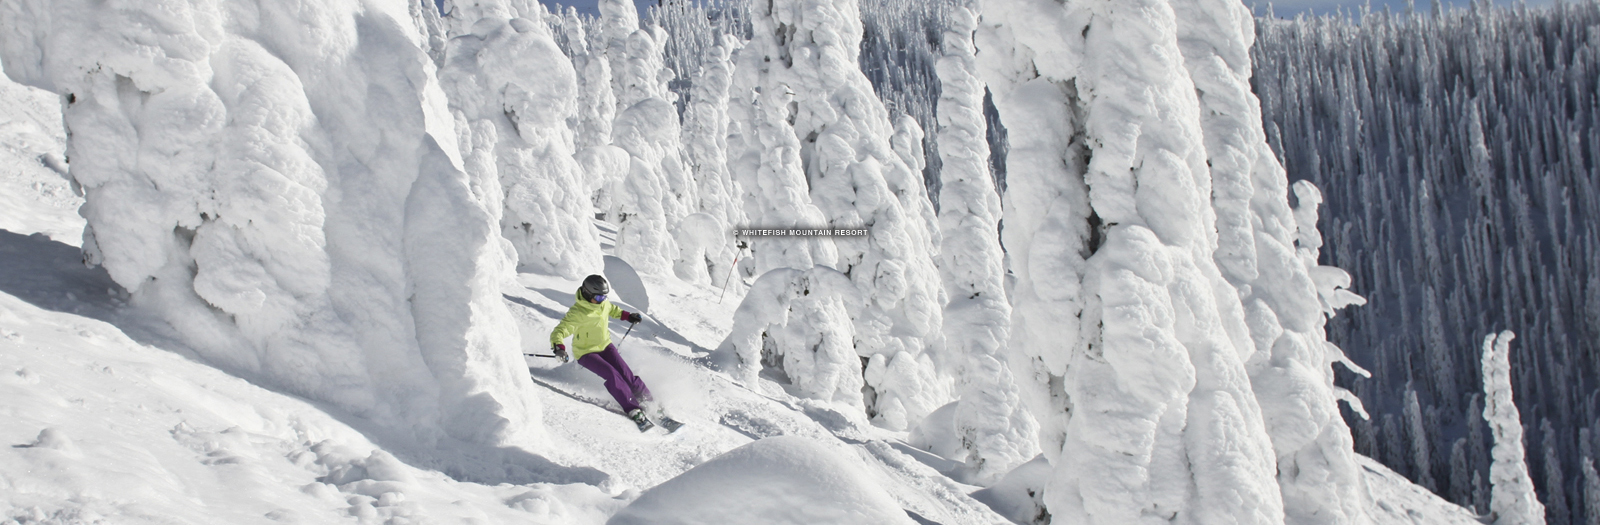 Whitefish Mountain Resort stay and ski packages